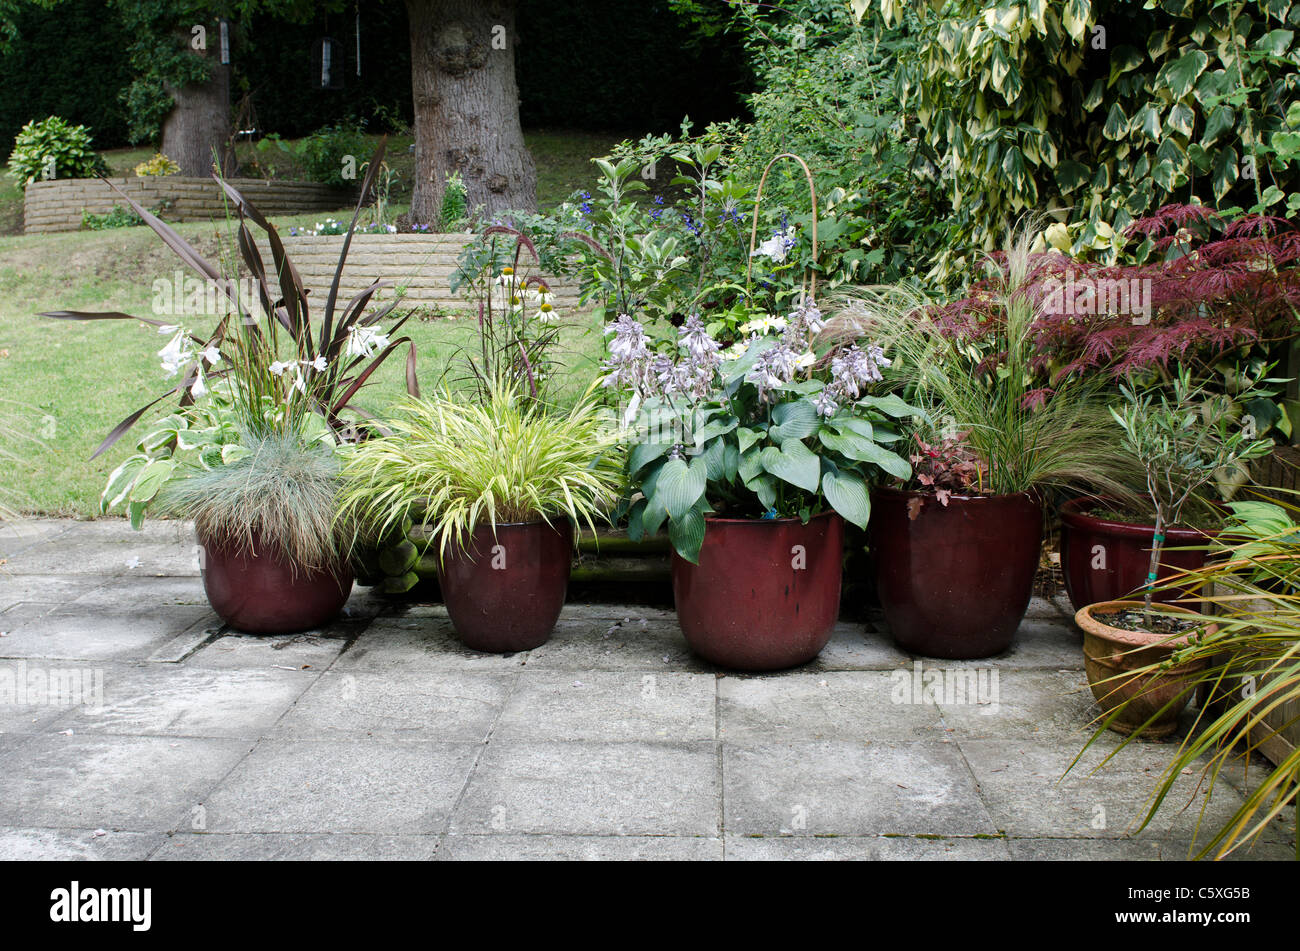 Patio garden pots from left ornamental grasses hosta red acer right patio garden pots from left ornamental grasses hosta red acer right olive front right workwithnaturefo